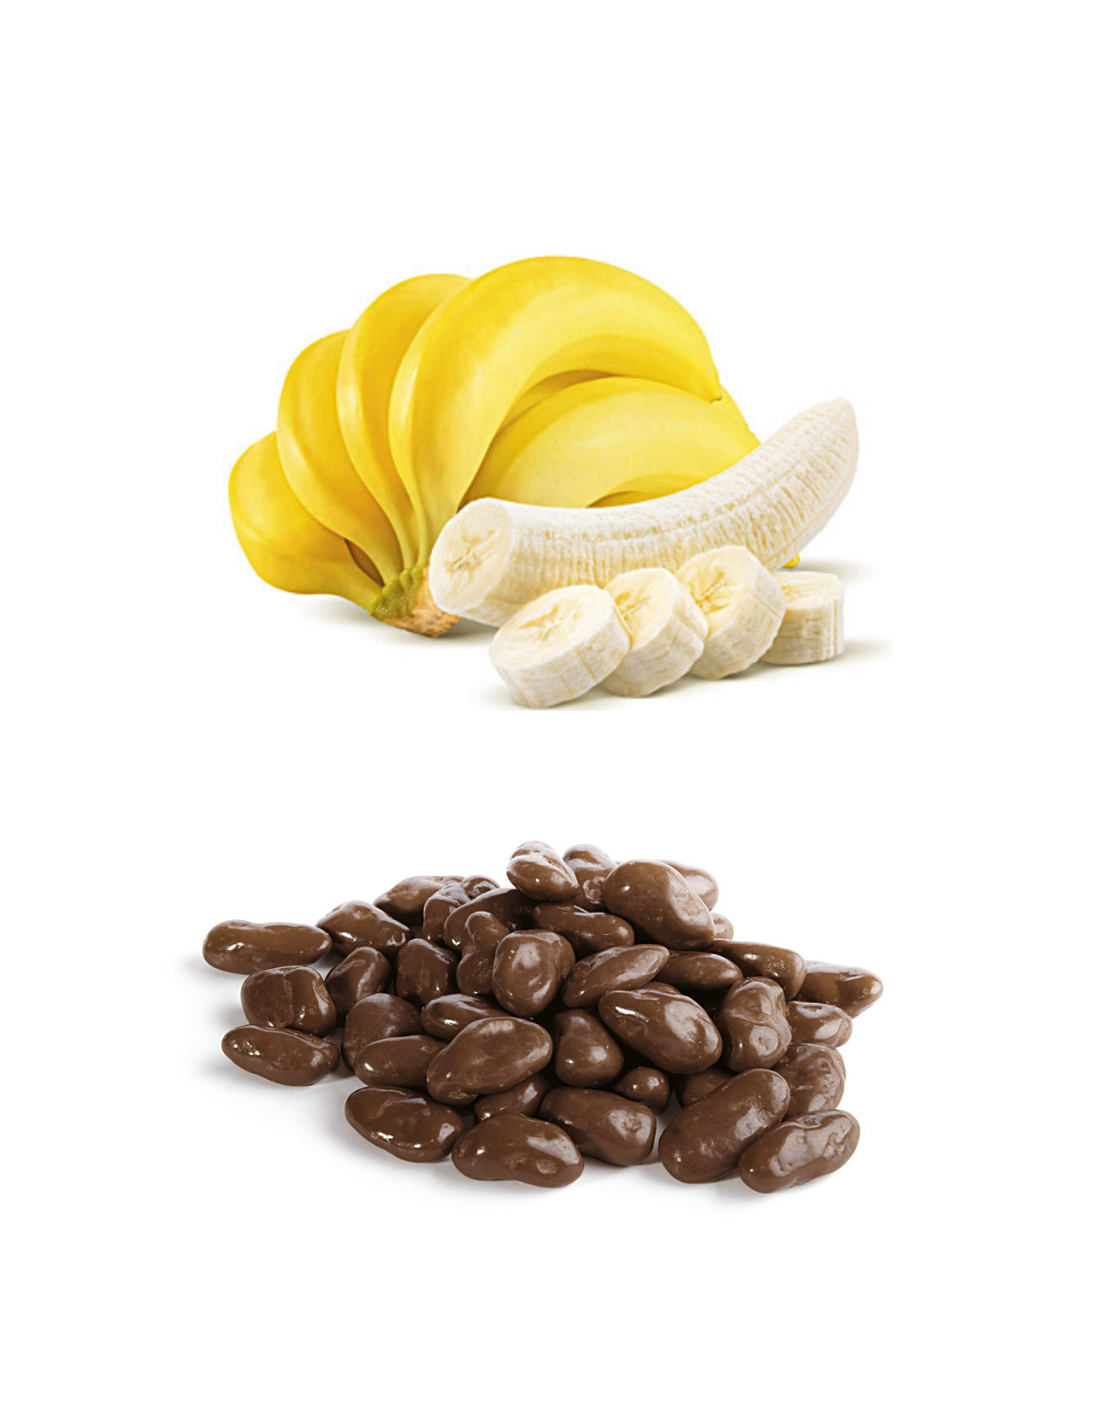 Delicious bananas in Milk Chocolate